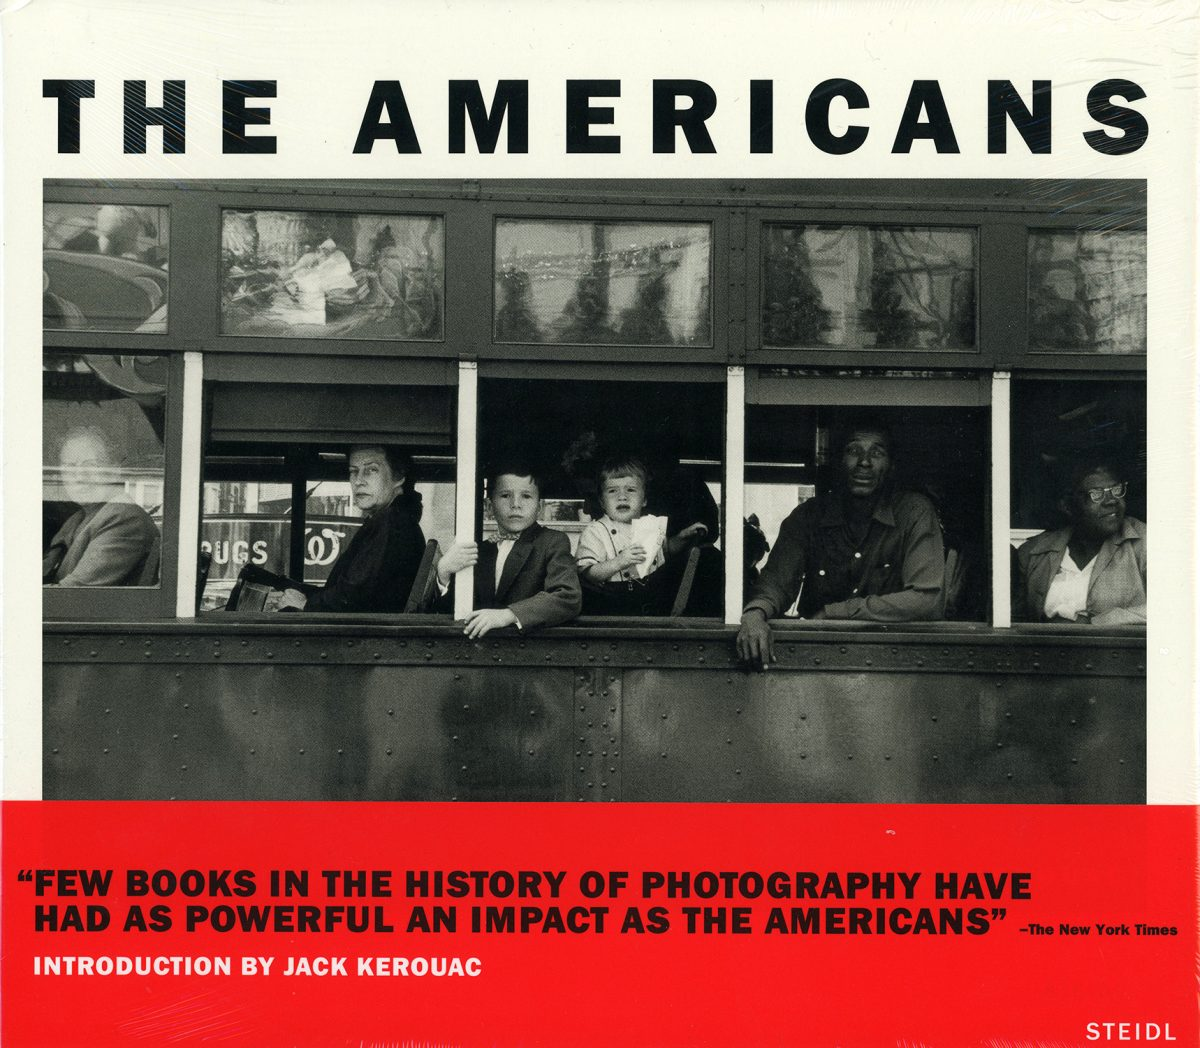 THE AMERICANS by Robert Frank